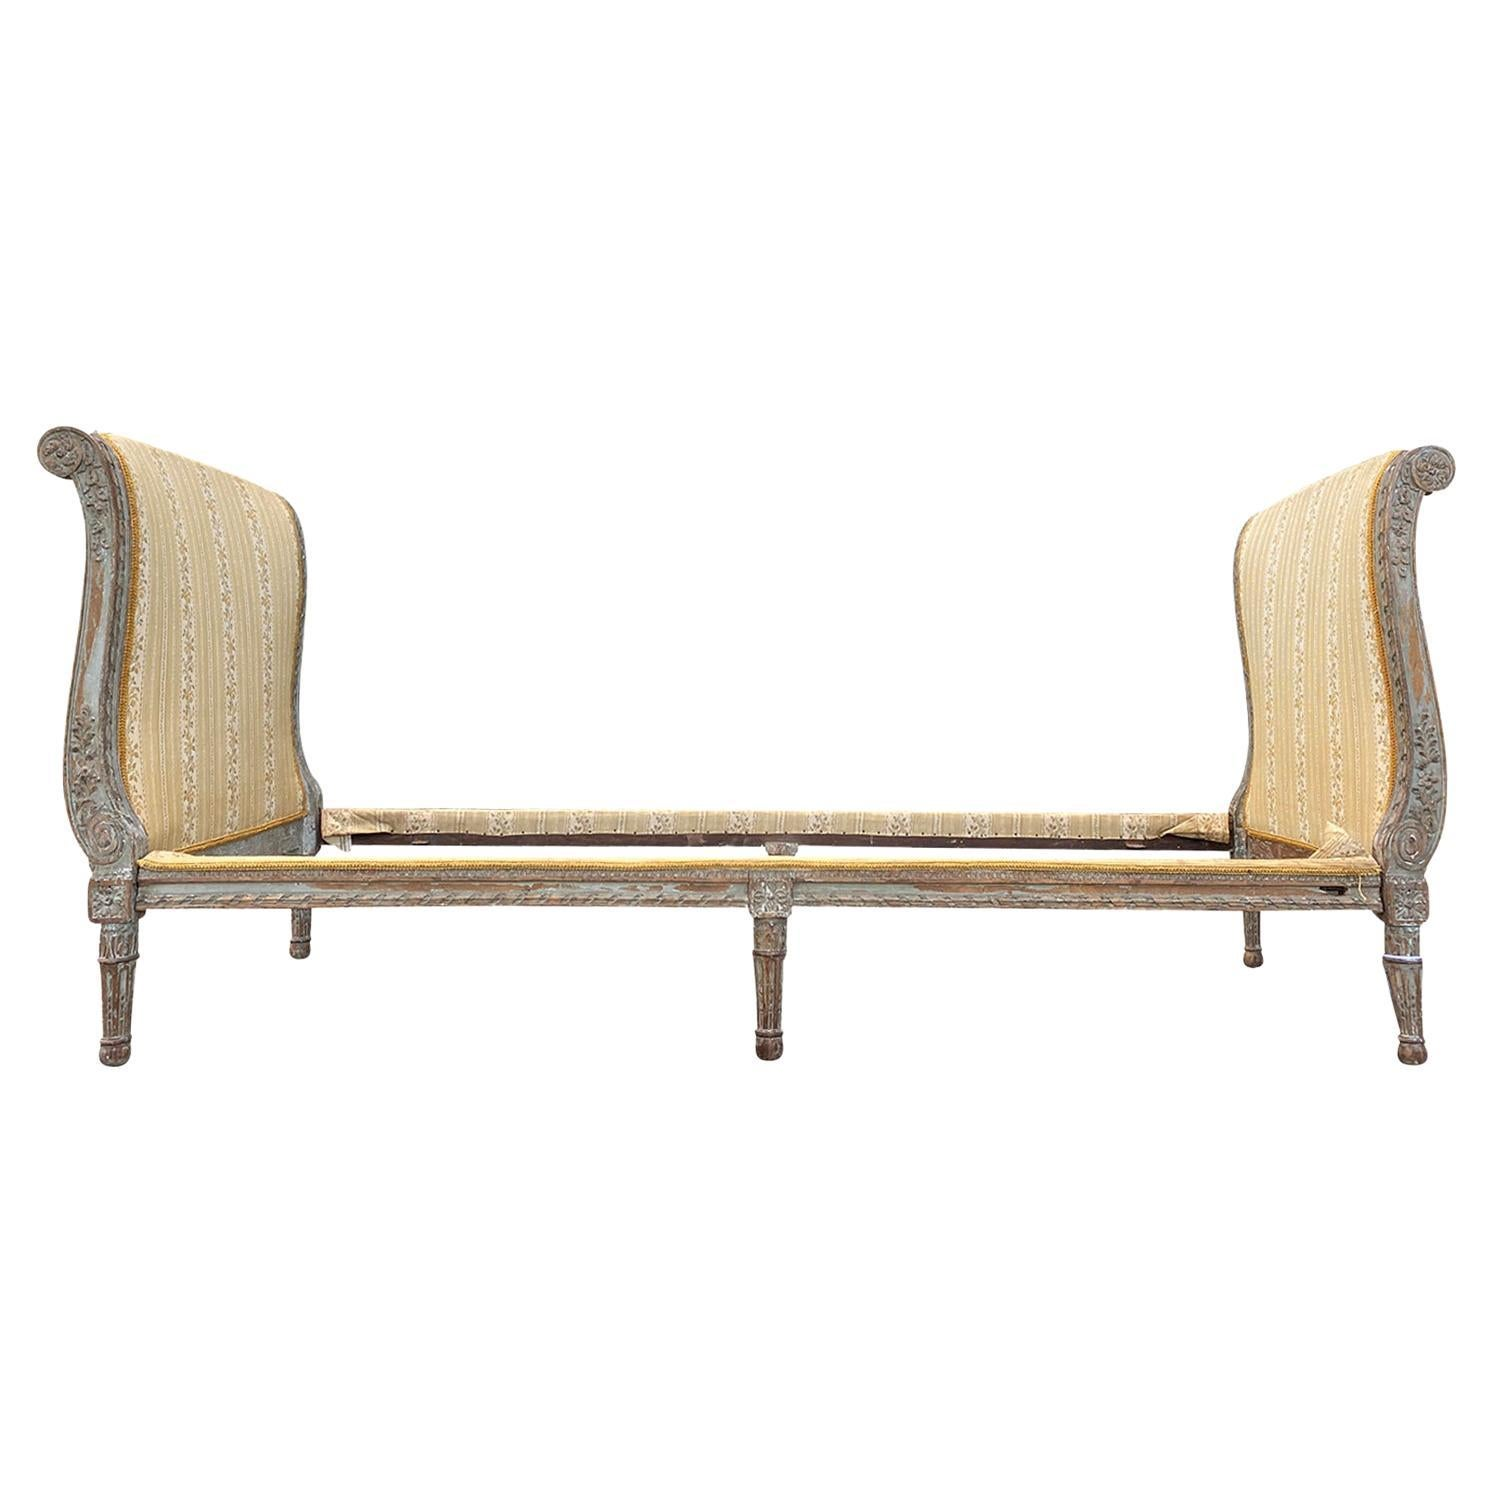 18th-19th Century Louis XVI Style Daybed